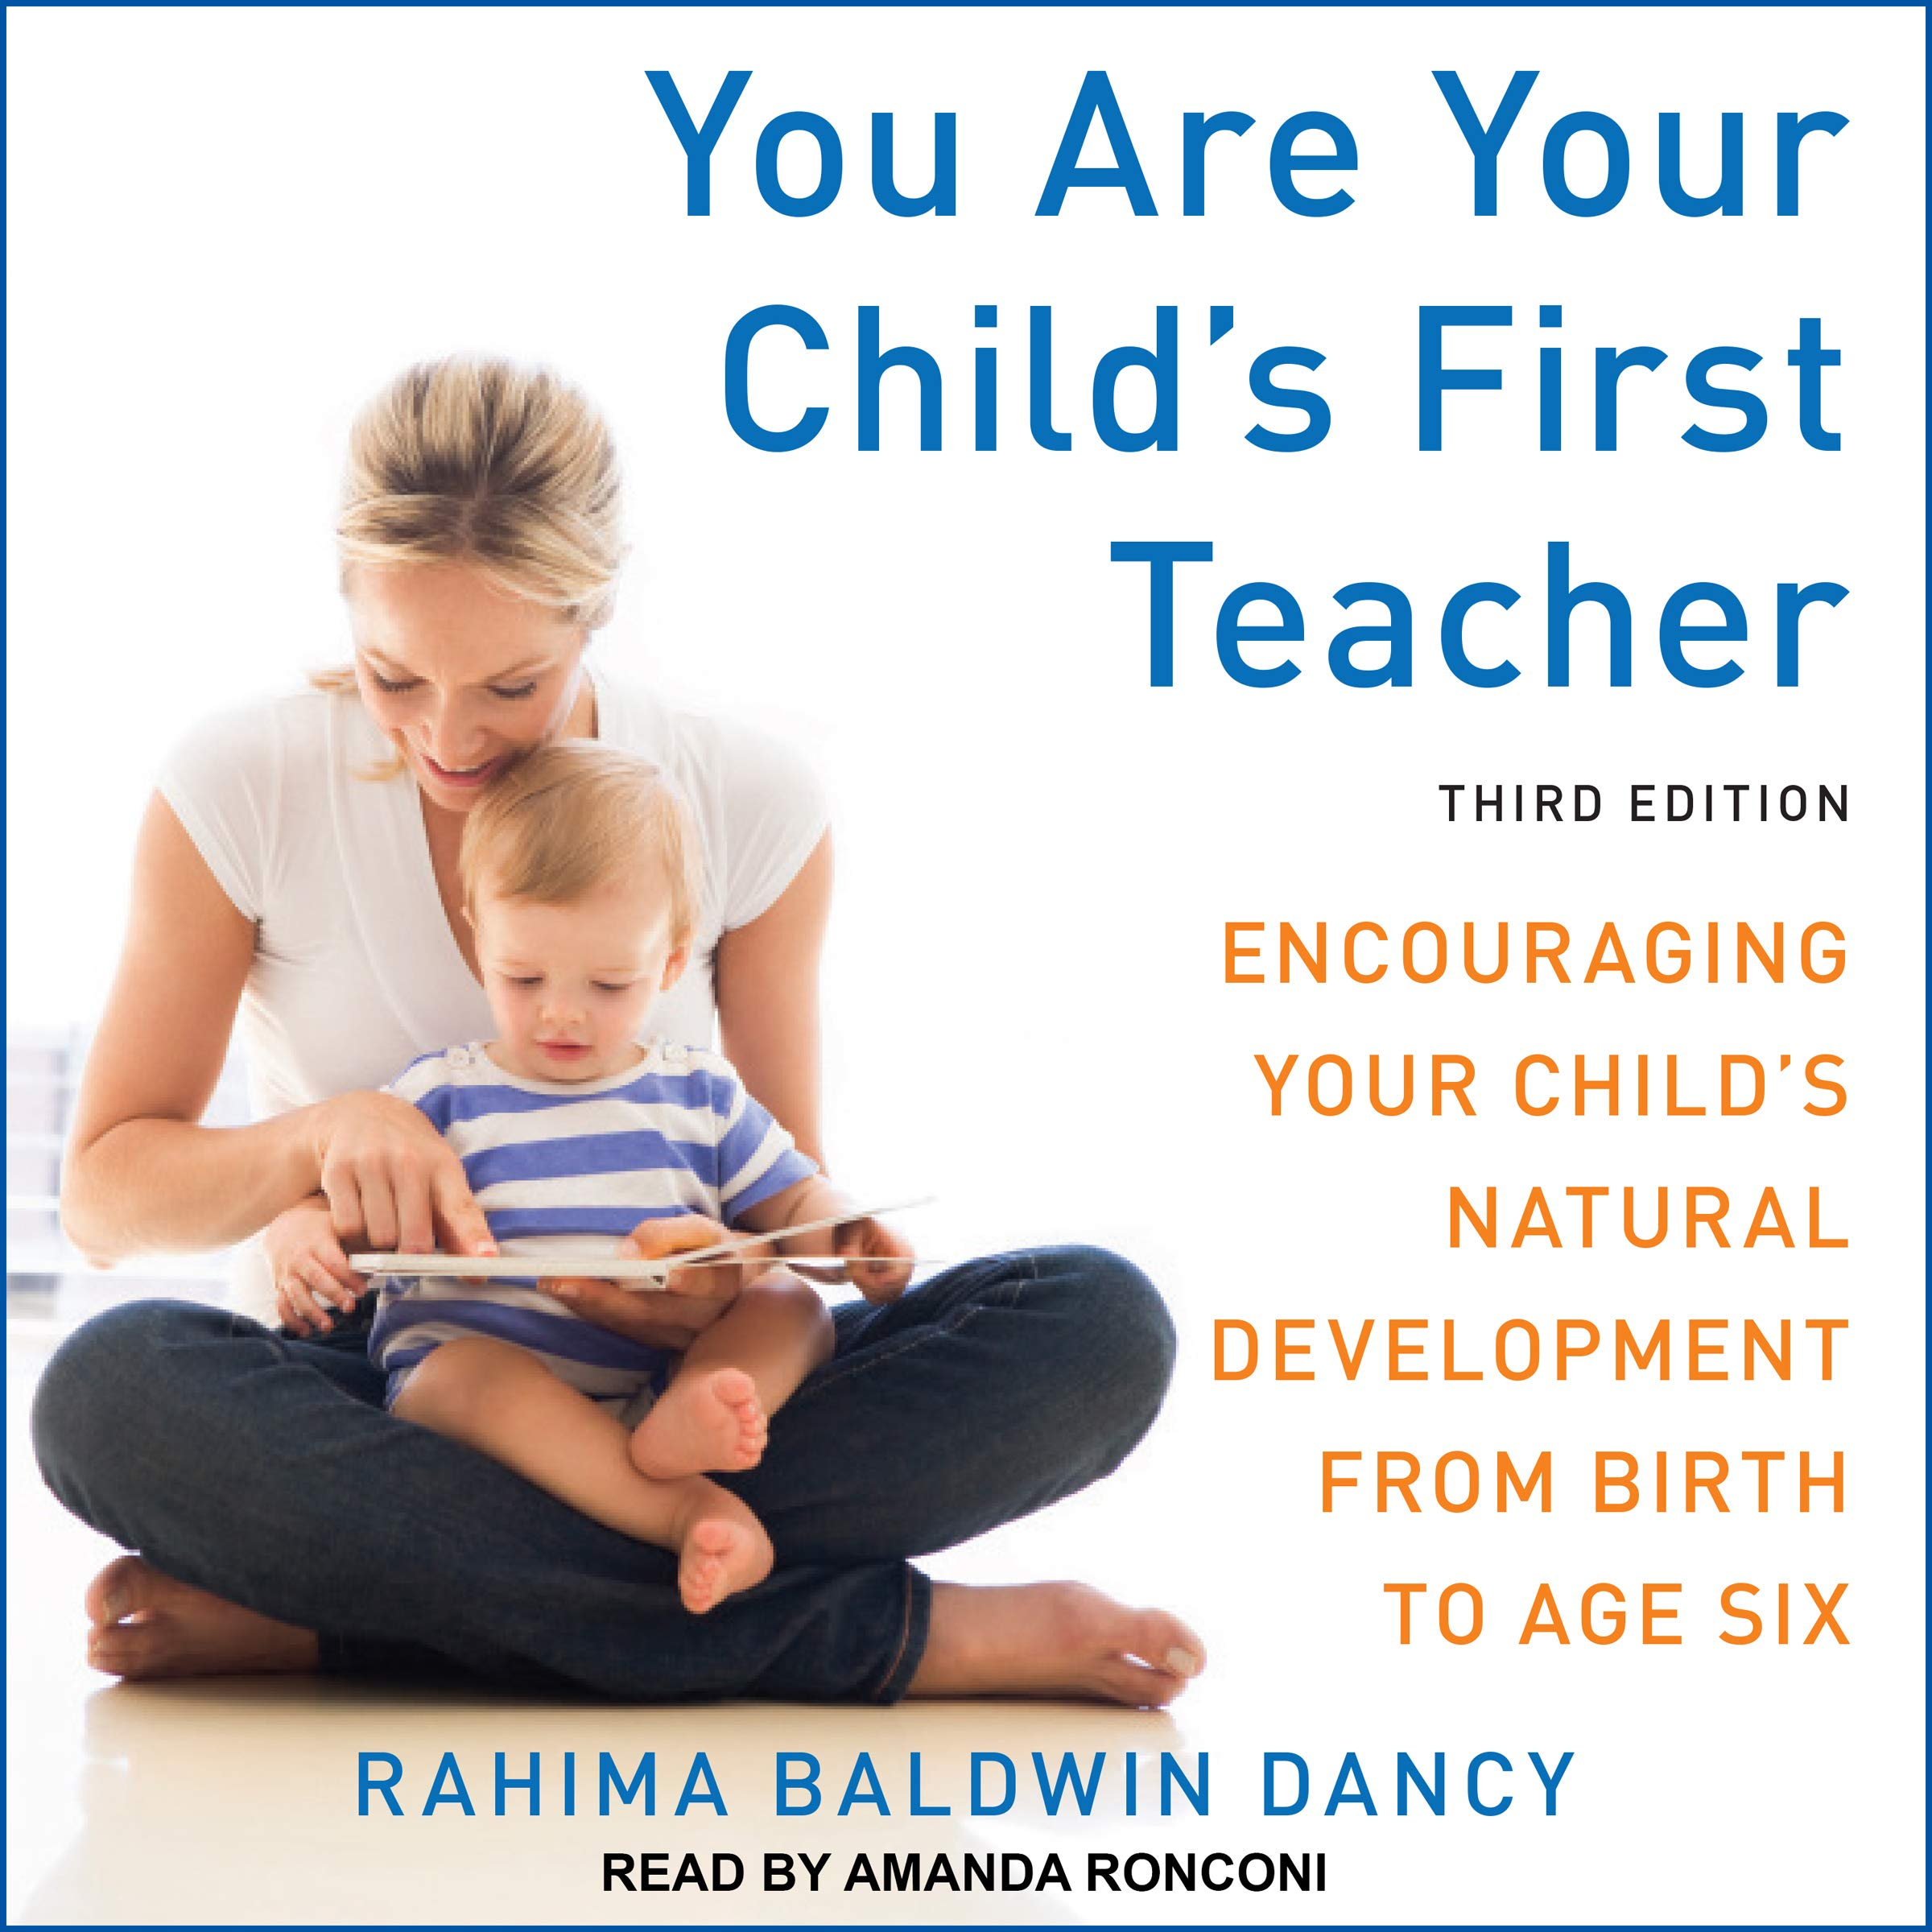 You Are Your Child's First Teacher Third Edition  Encouraging Your Child's Natural Development From Birth To Age Six